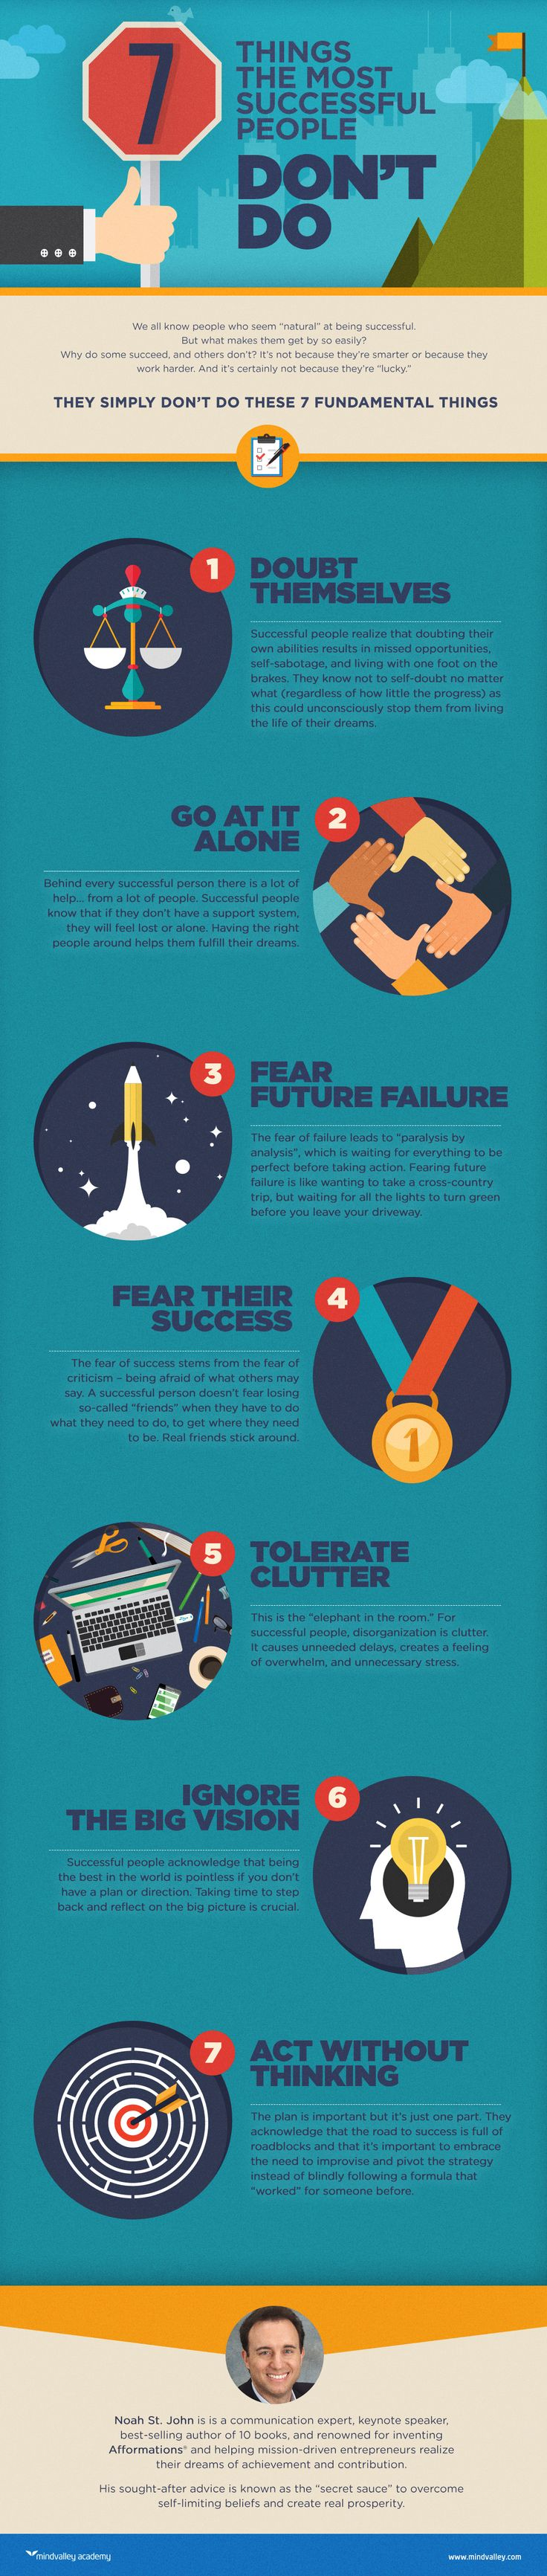 7 Things the Most Successful People Don't Do | Mindvalley Academy - 02.05.2015